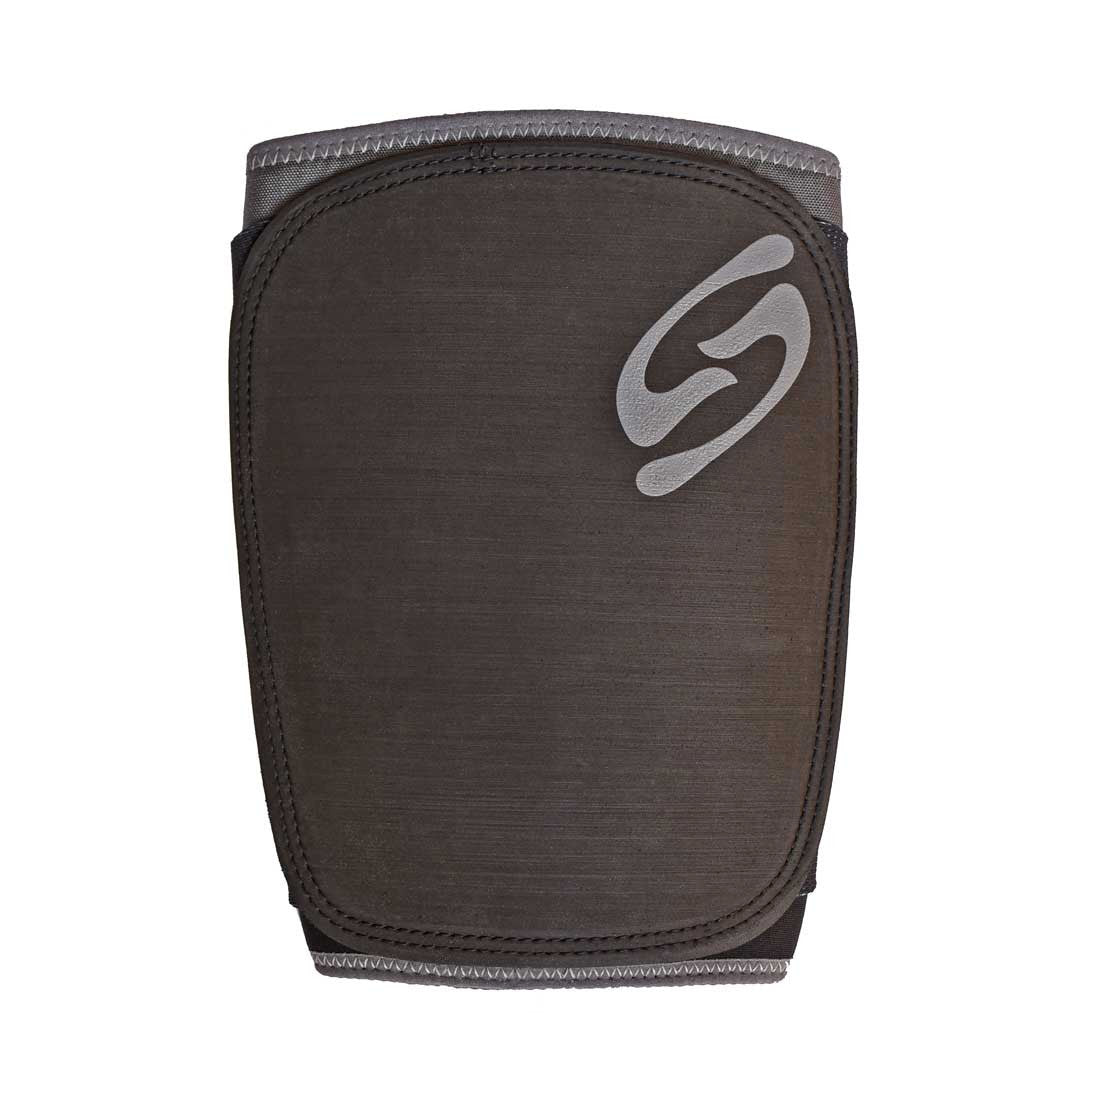 Send Kneepad Slim (Large)